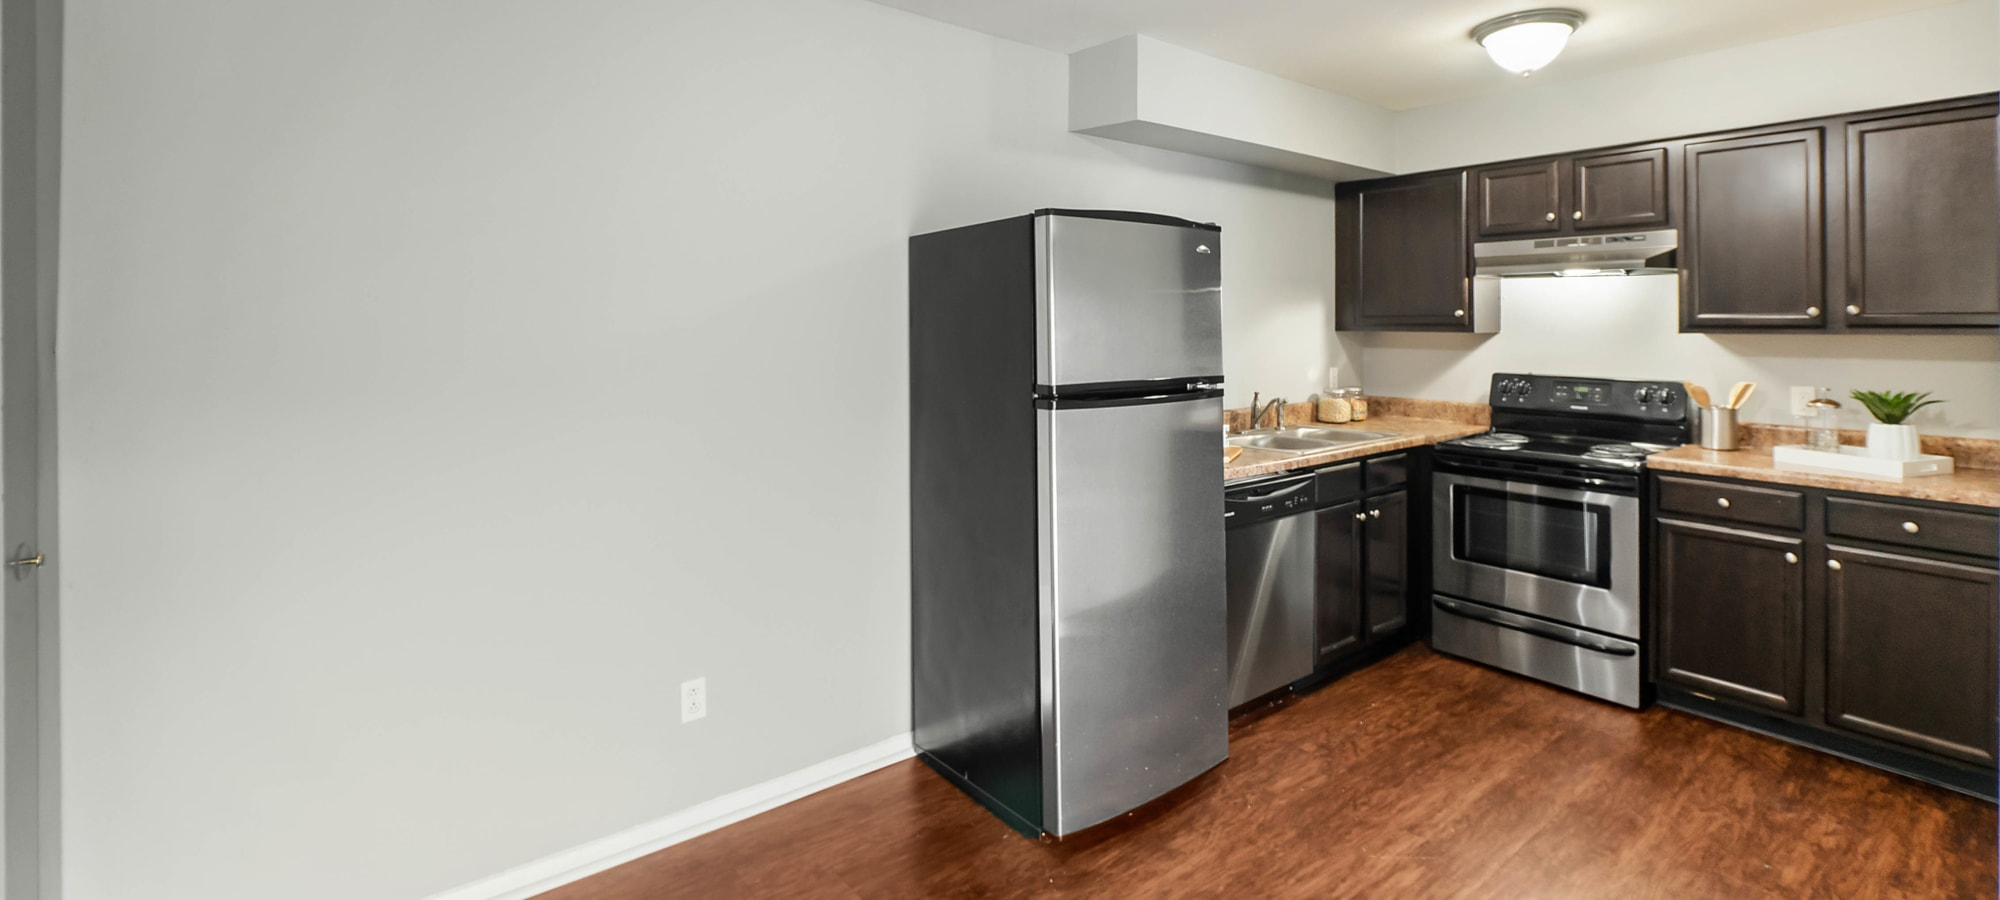 Apartments at Vivid Lofts in Chattanooga, Tennessee